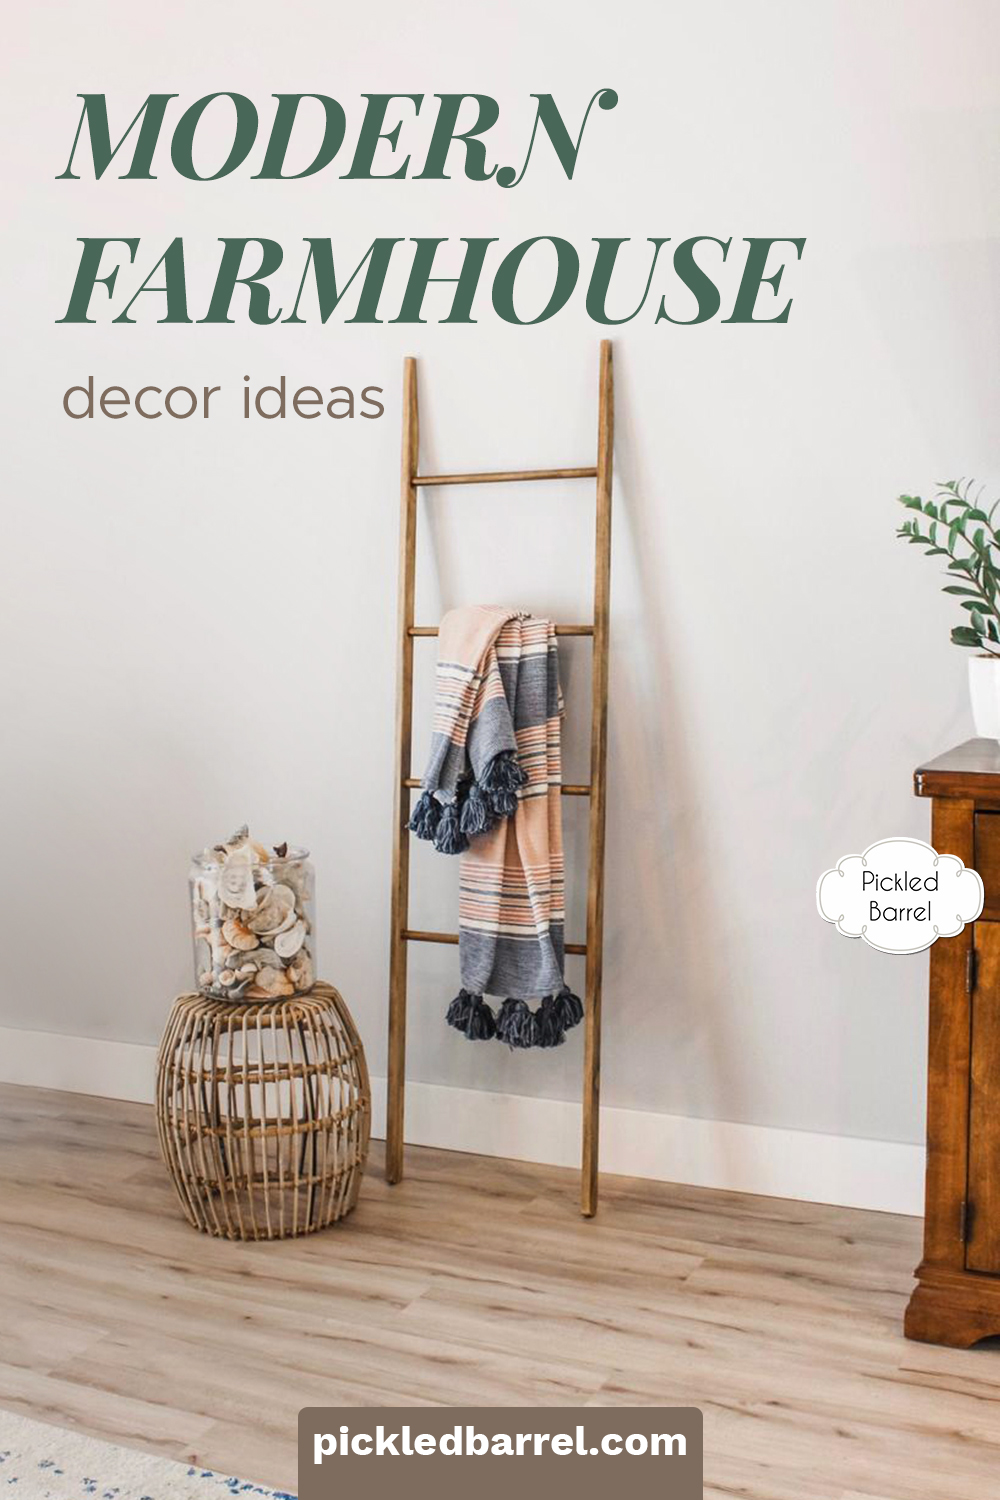 Modern farmhouse decor ideas for every room in your home. This list is full of ideas that work in more than one room, and links to help you find the items quickly and painlessly! Get ready to decorate! #pickledbarrelblog #modernfarmhousedecorideas